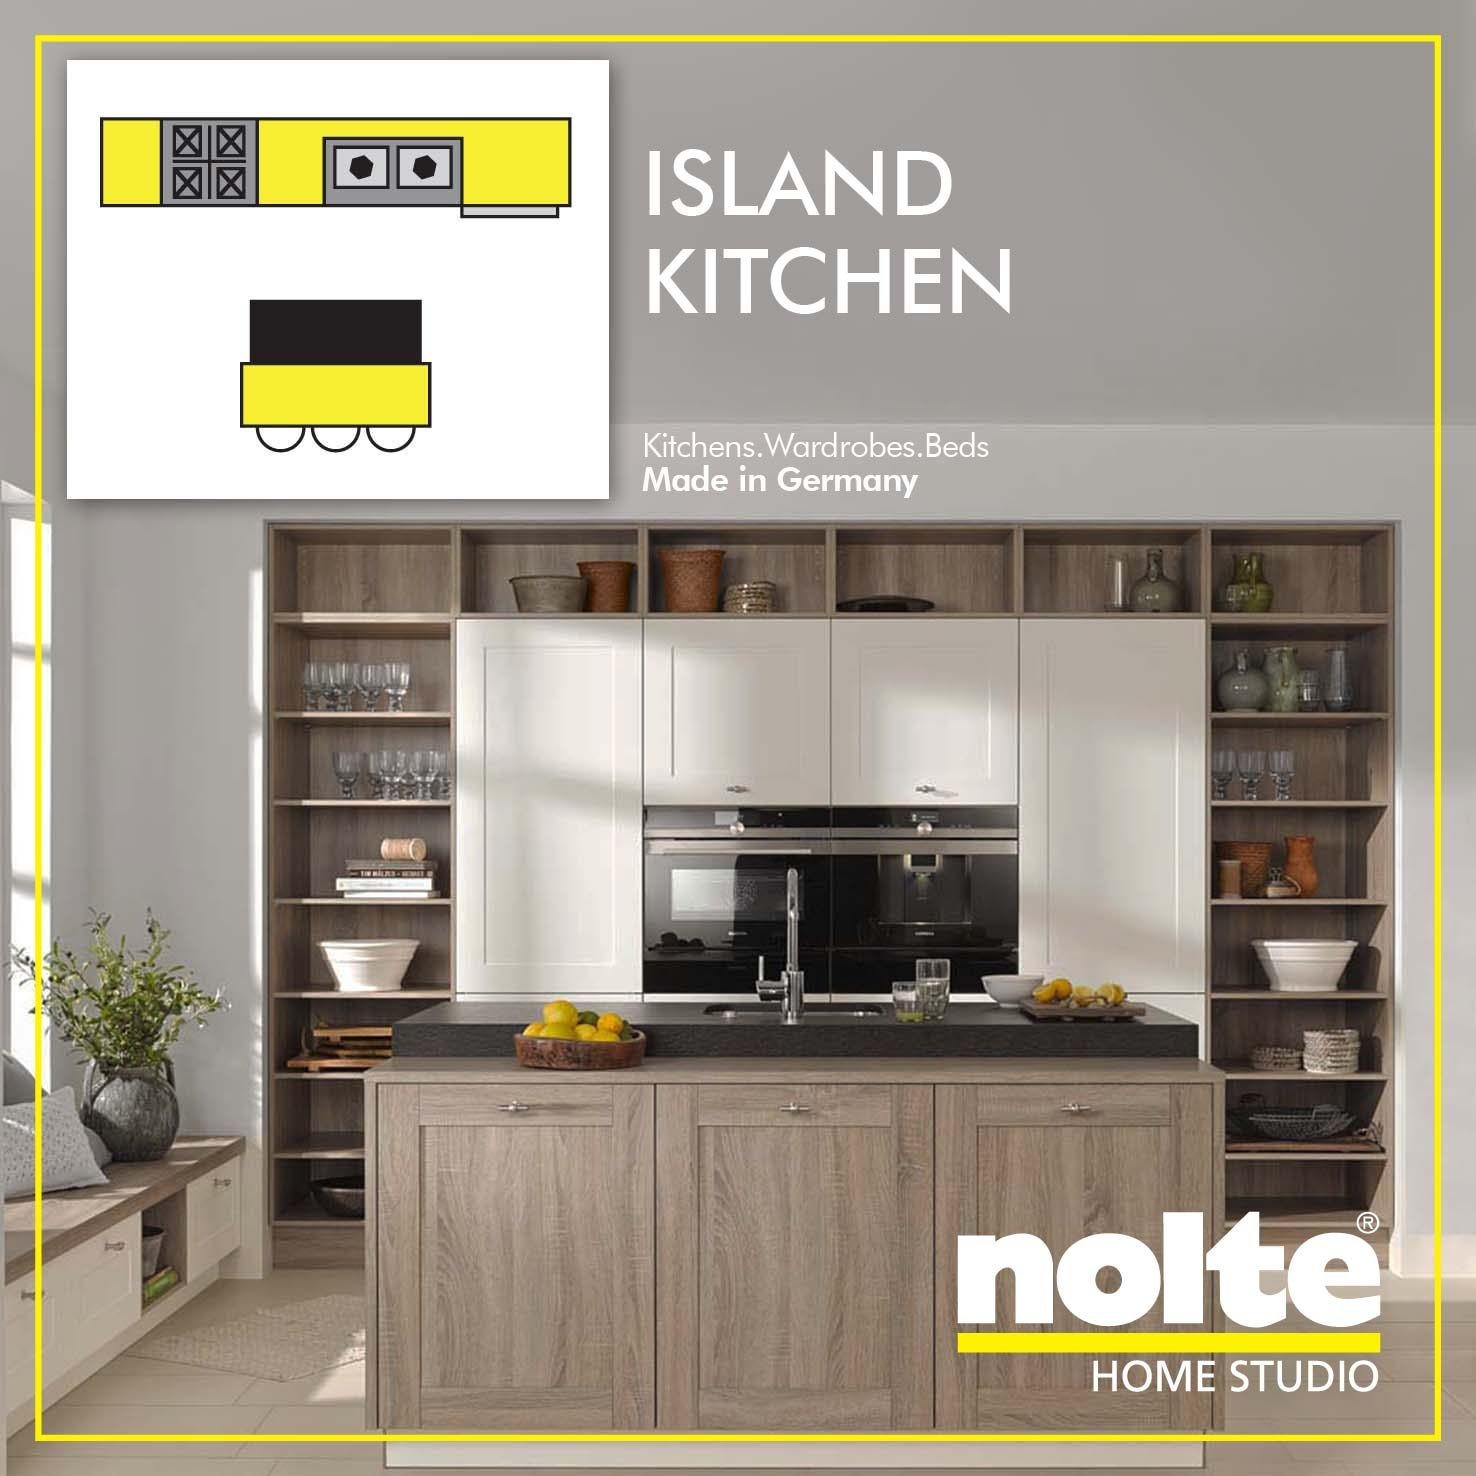 The Island kitchen is suitable for a large-sized floor space.  The Island serves as an additional storage space as well as a room for casual dining. Visit: www.noltehomestudio.in/kitchens #ModularKitchens #Kitchens #Nolte #NolteHomeStudio #IslandKitchen #Island #KitchenIsland